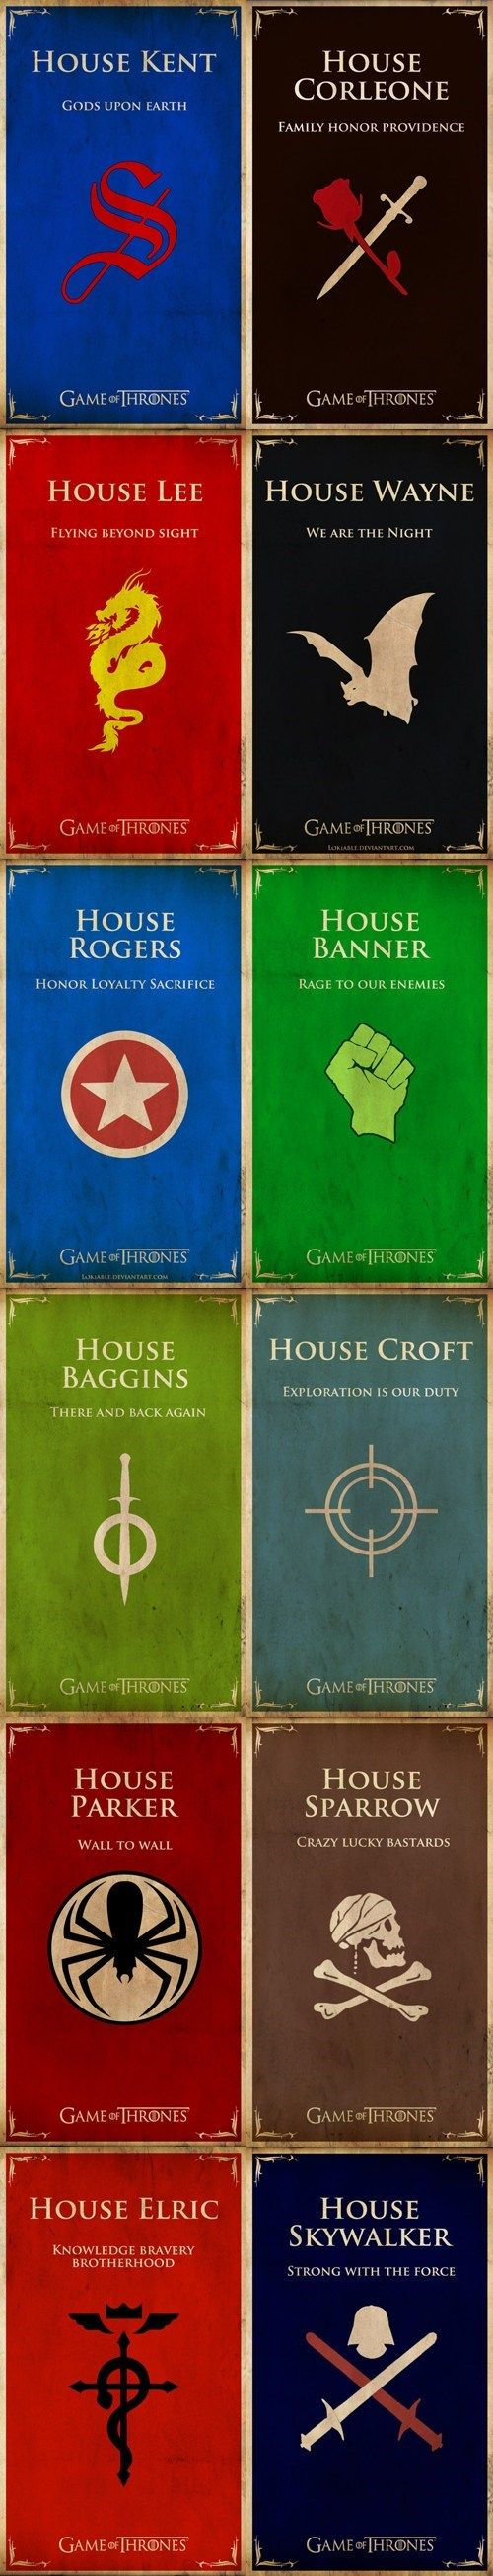 "House Parker should be ""With great power comes great responsibility"" and House Sparrow should be ""Rum"""